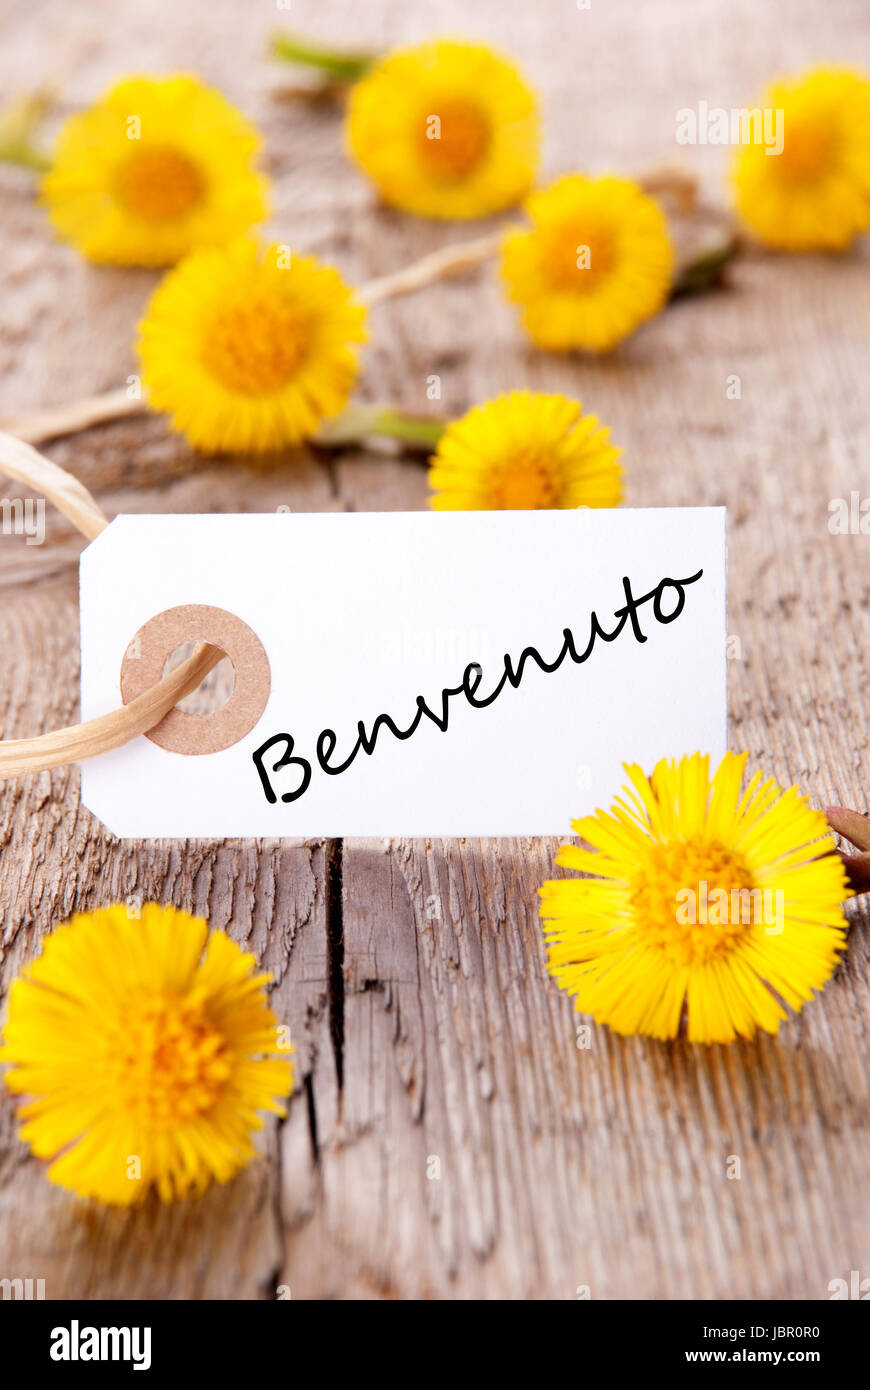 Yellow Flowers With The Italian Word Benvenuto Which Means Welcome